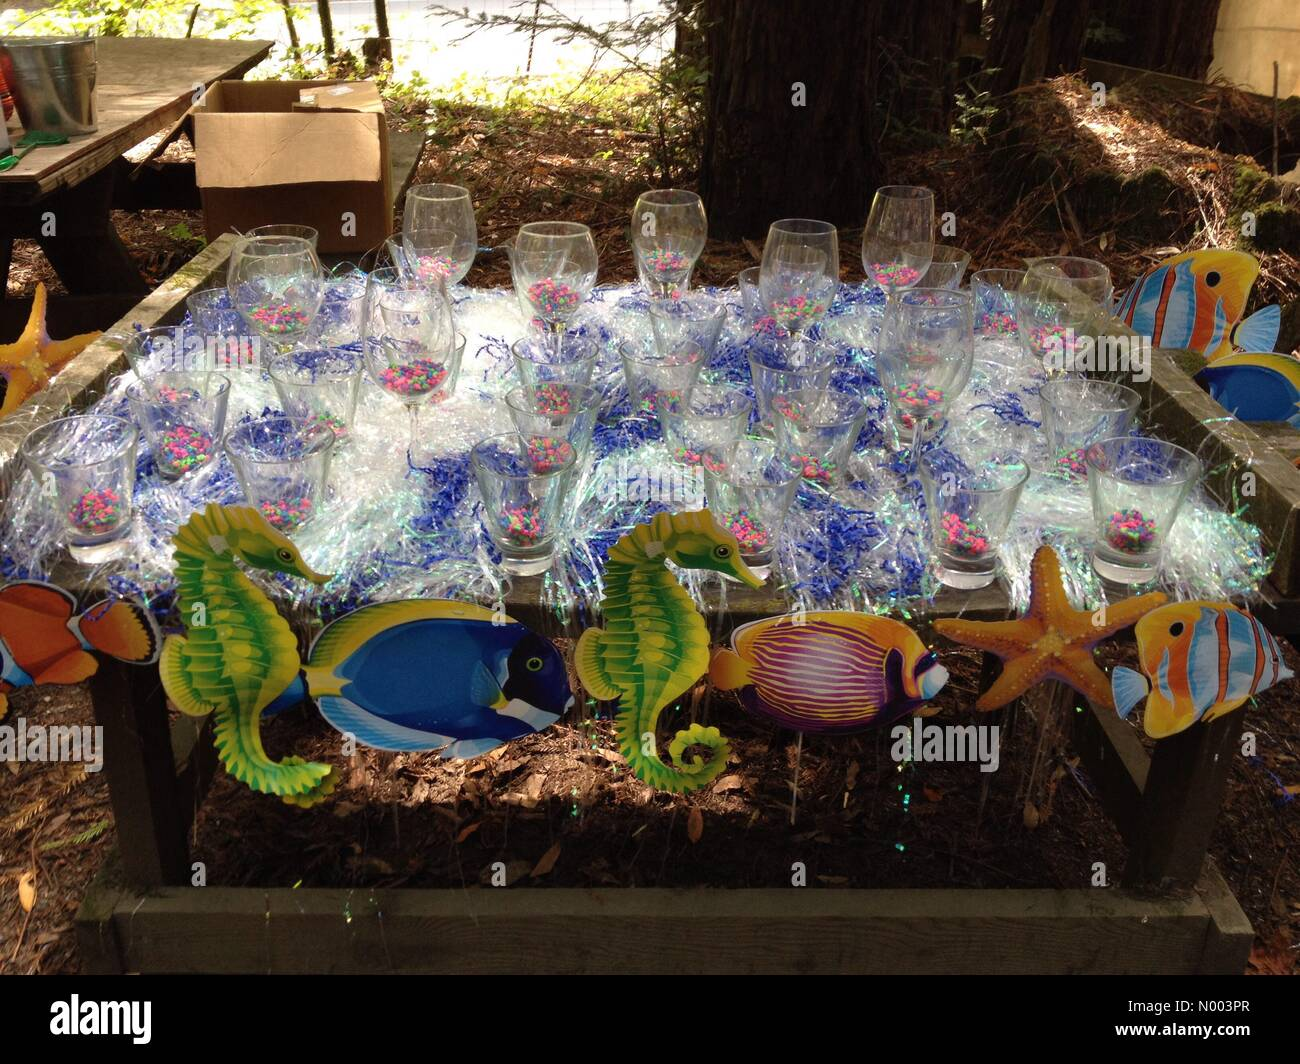 California, USA. 19th July, 2015. A toss game is set up at the annual Occidental Volunteer Fire Department BBQ. - Stock Image